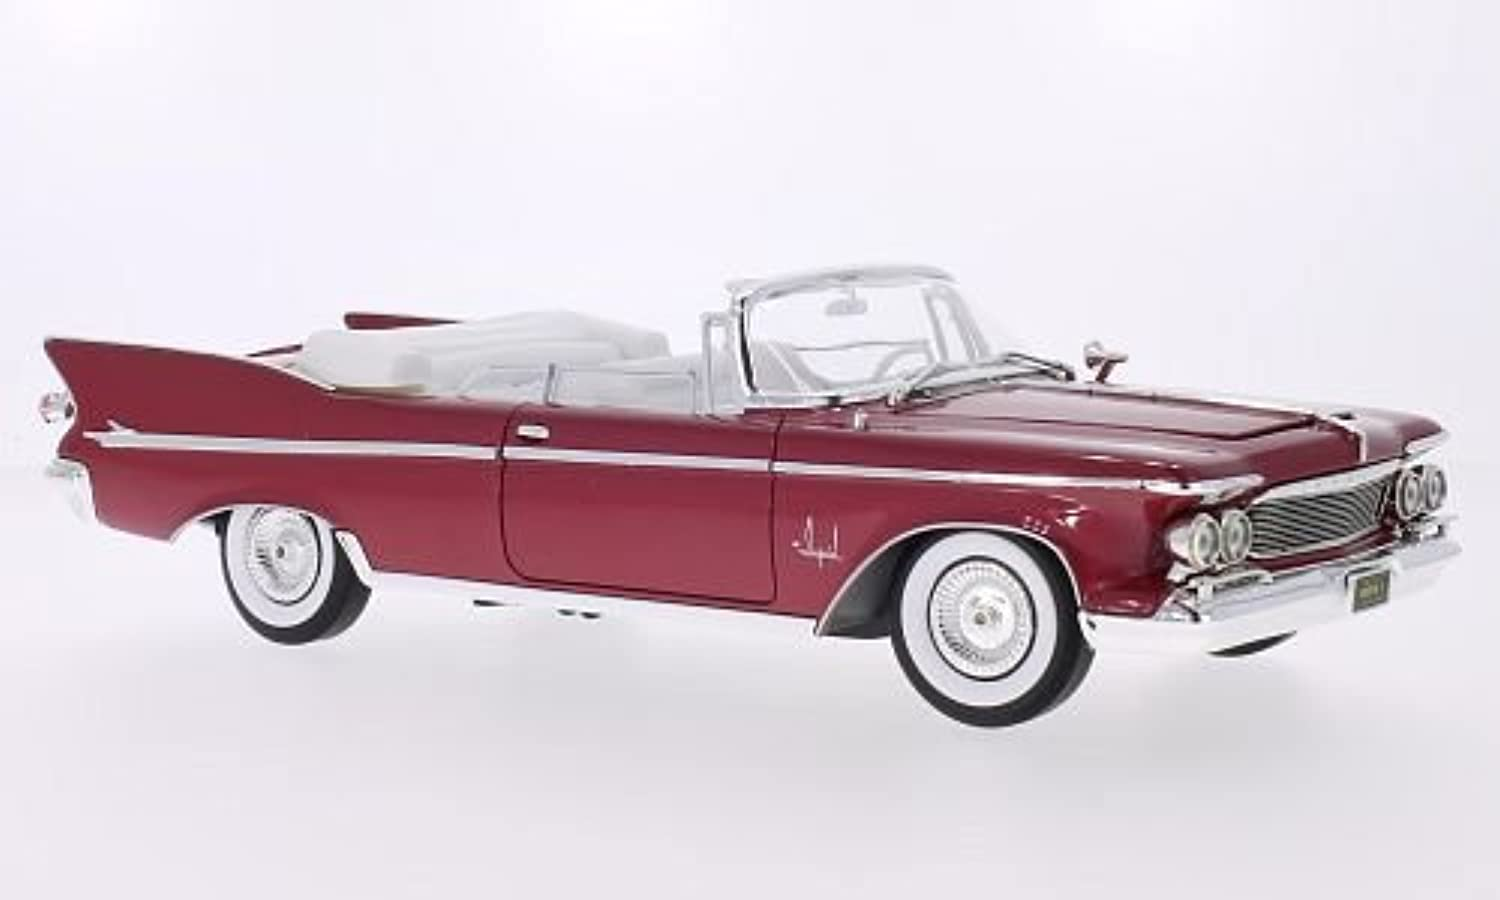 Imperial Crown 2-Door ConGrünible, metallic-rot, 1961, Modellauto, Fertigmodell, Lucky Die Cast 1 18 B01HQAHL9E Treten Sie ein in die Welt der Spielzeuge und finden Sie eine Quelle des Glücks  |  Neuer Markt